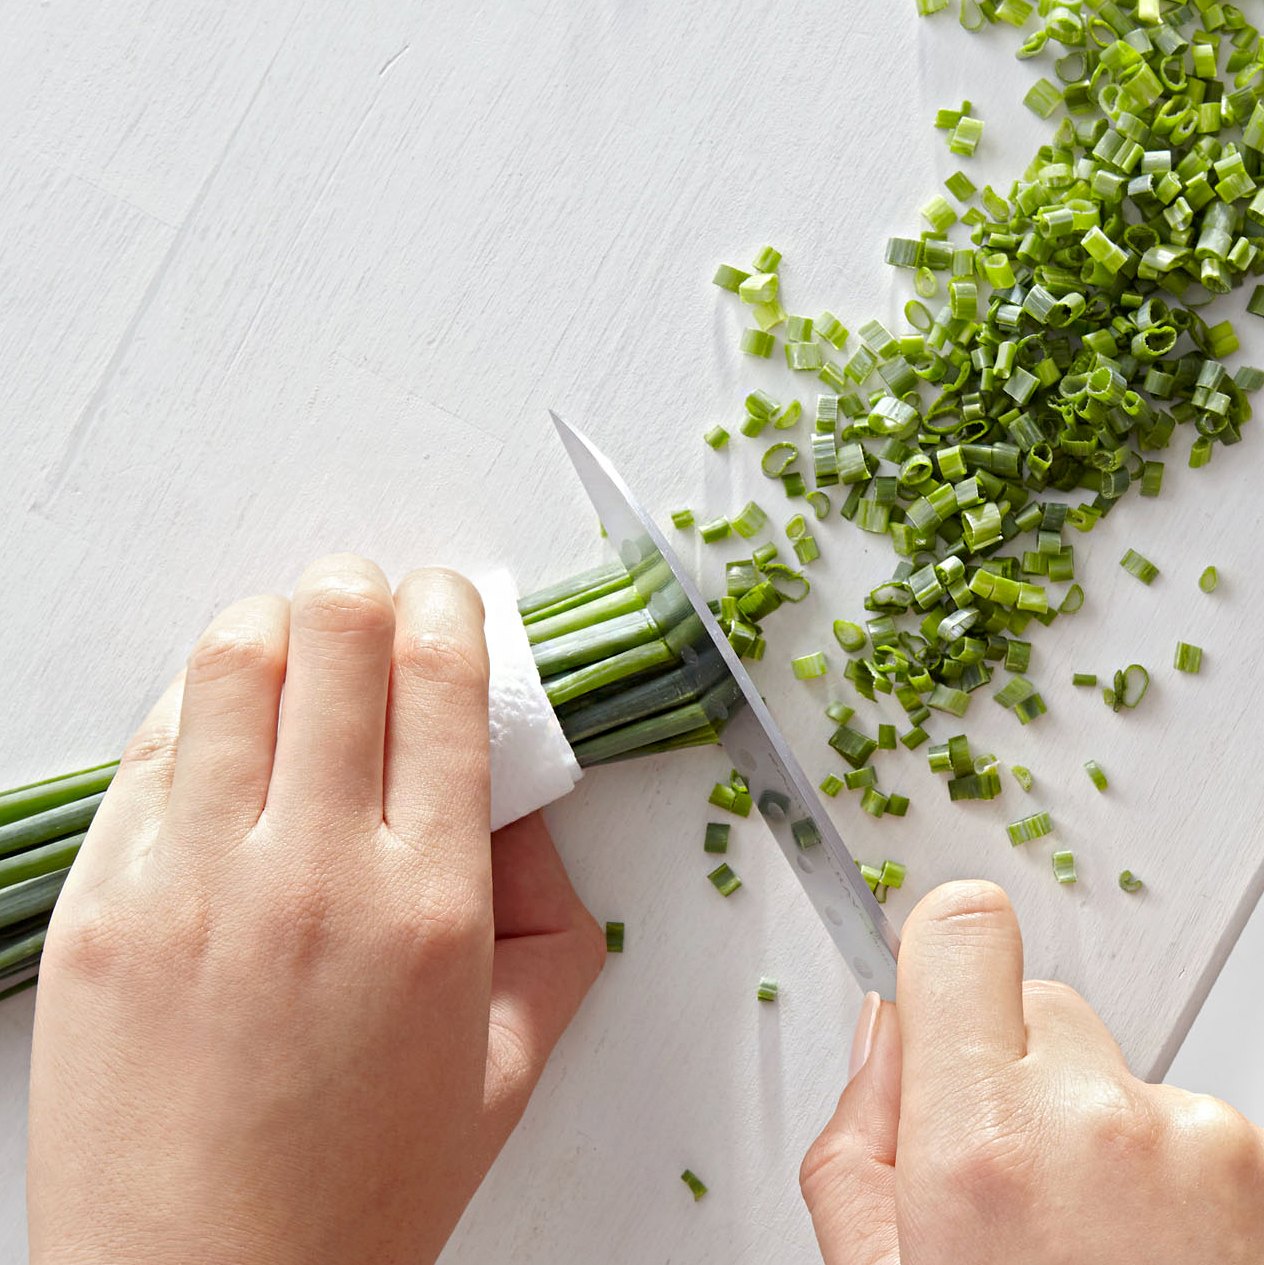 tip for chopping chives